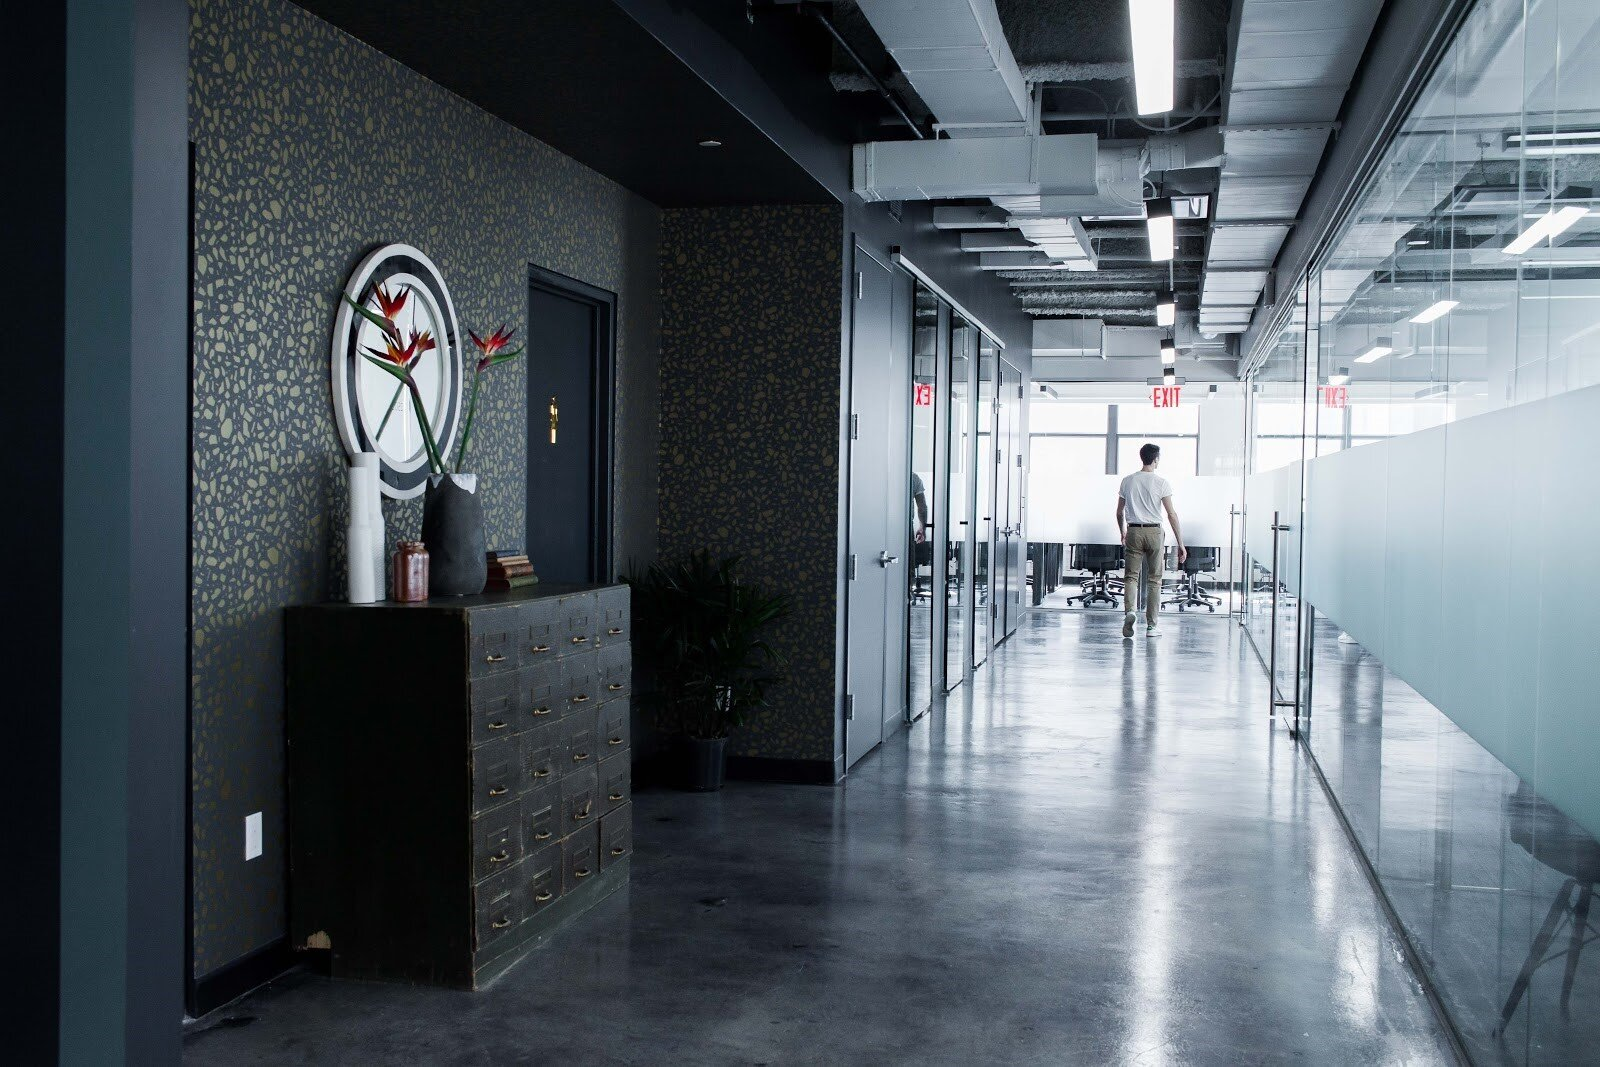 Office design with shared working spaces and glass doors